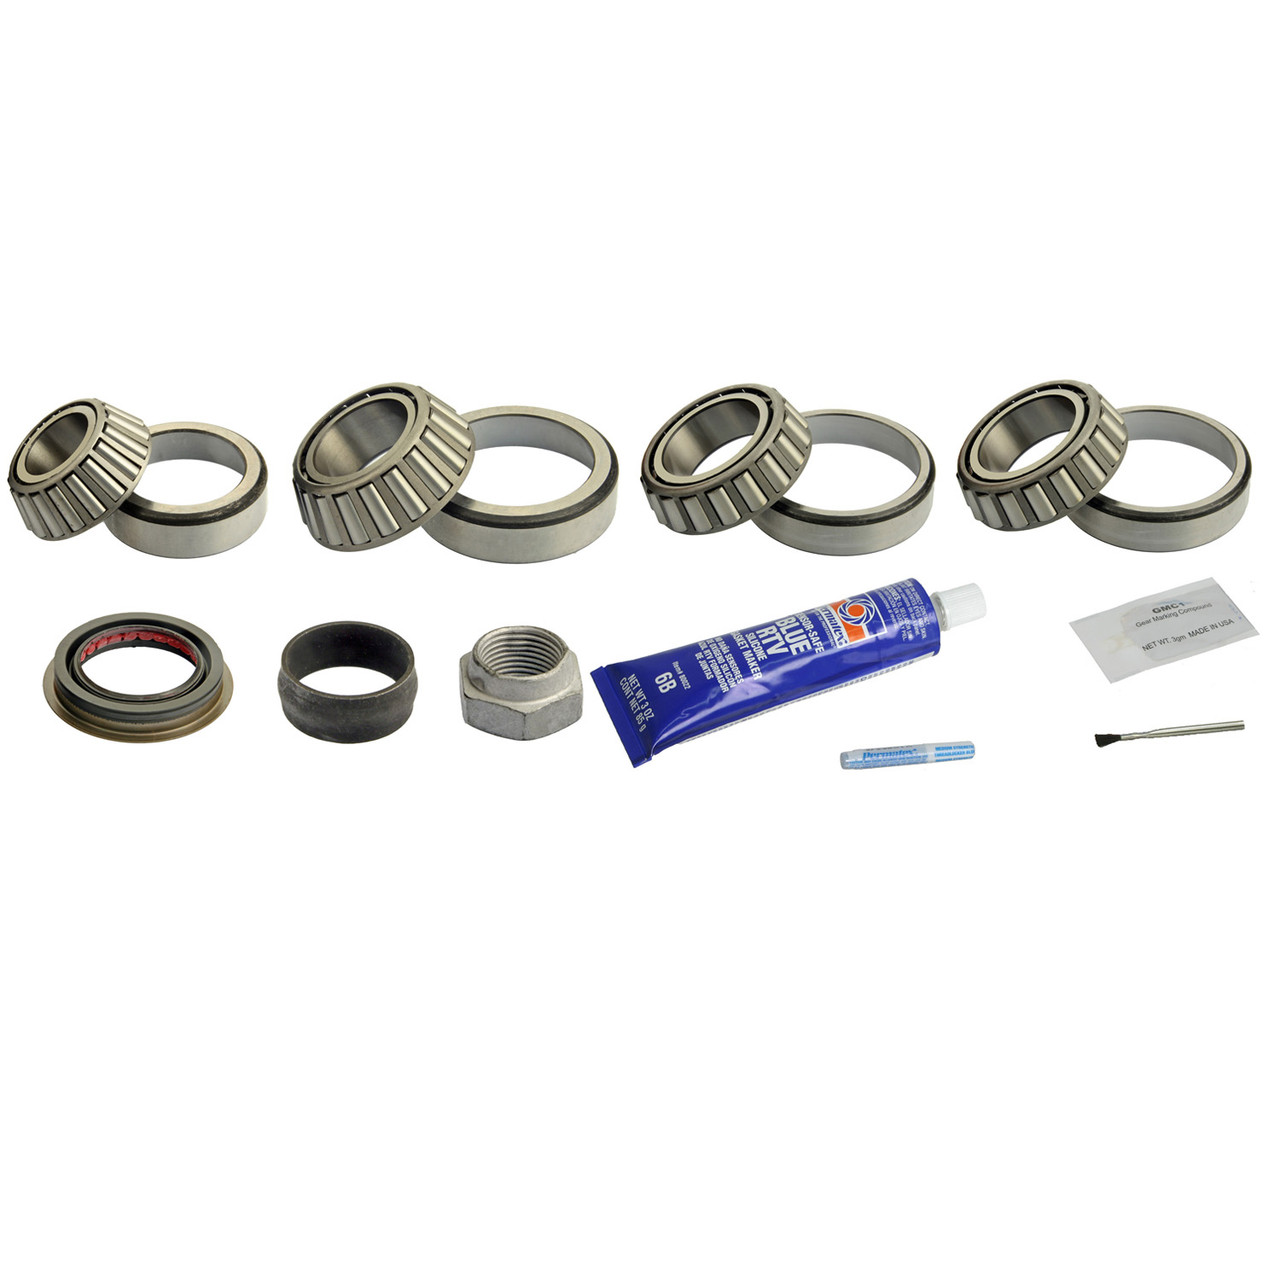 DRK385A Differential Bearing Kit for Nissan C200 Rear Frontier & Xterra